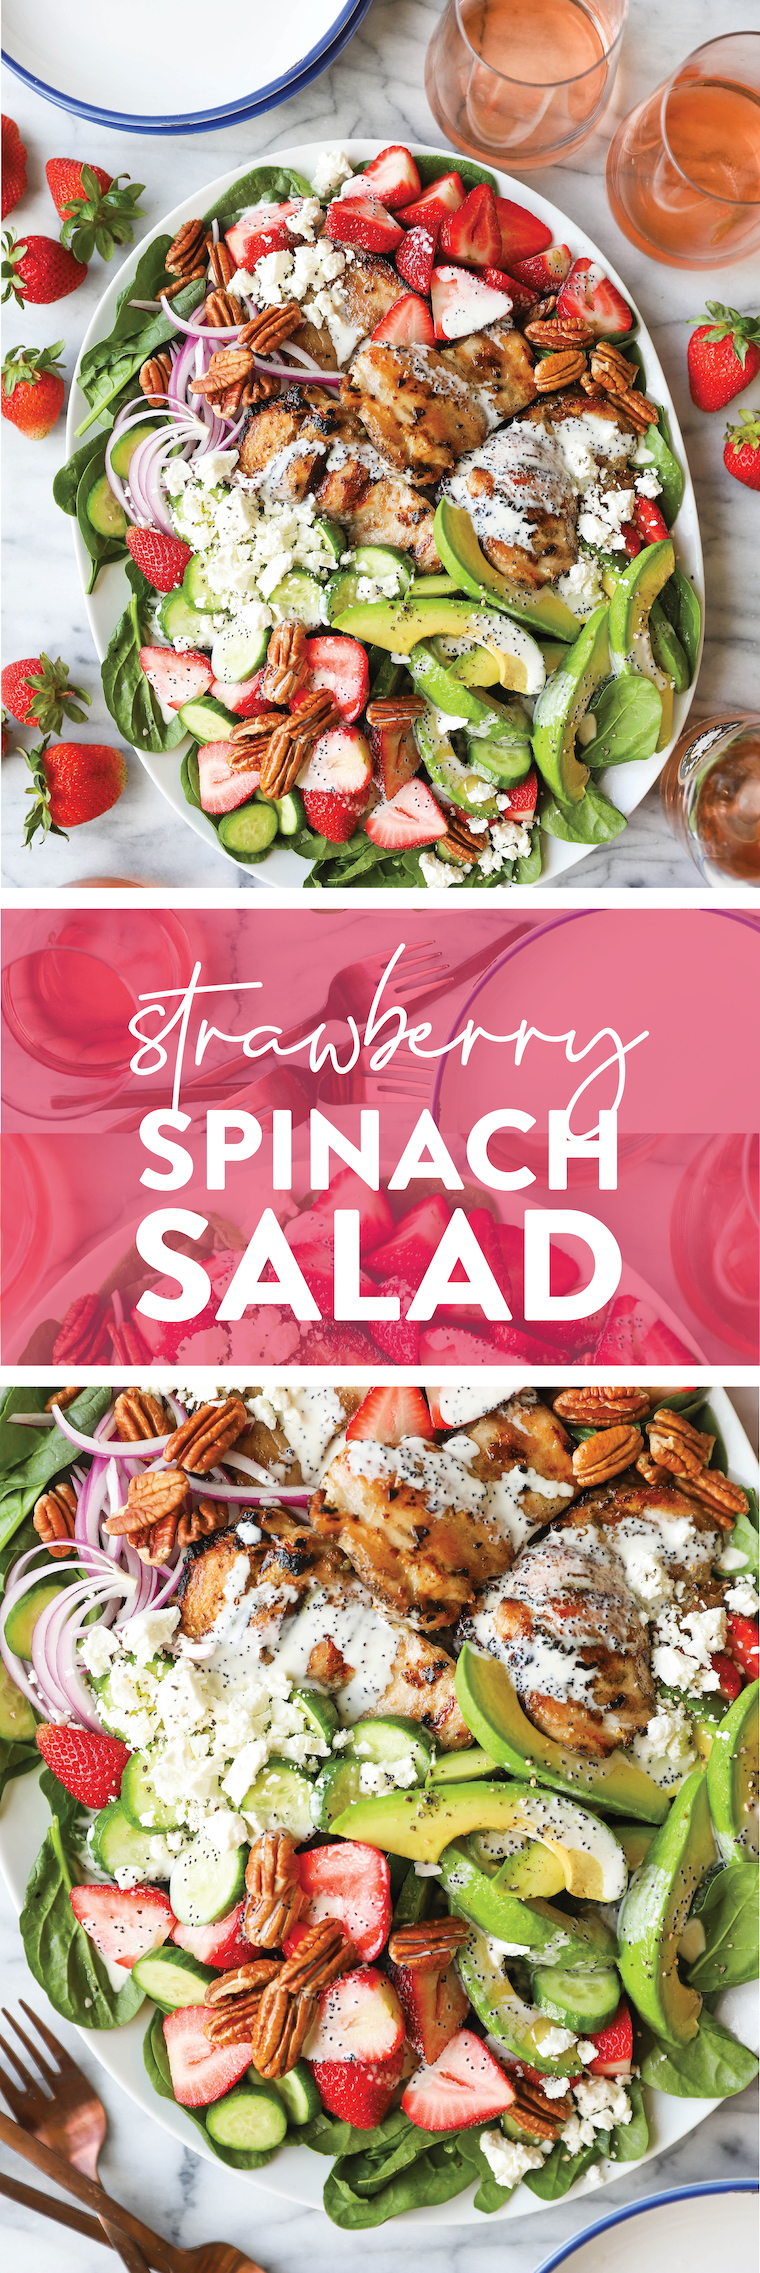 Strawberry Spinach Salad - A crowd favorite! Loaded with baby spinach, fresh strawberries, juicy, tender chicken thighs + the dreamiest poppy seed dressing!